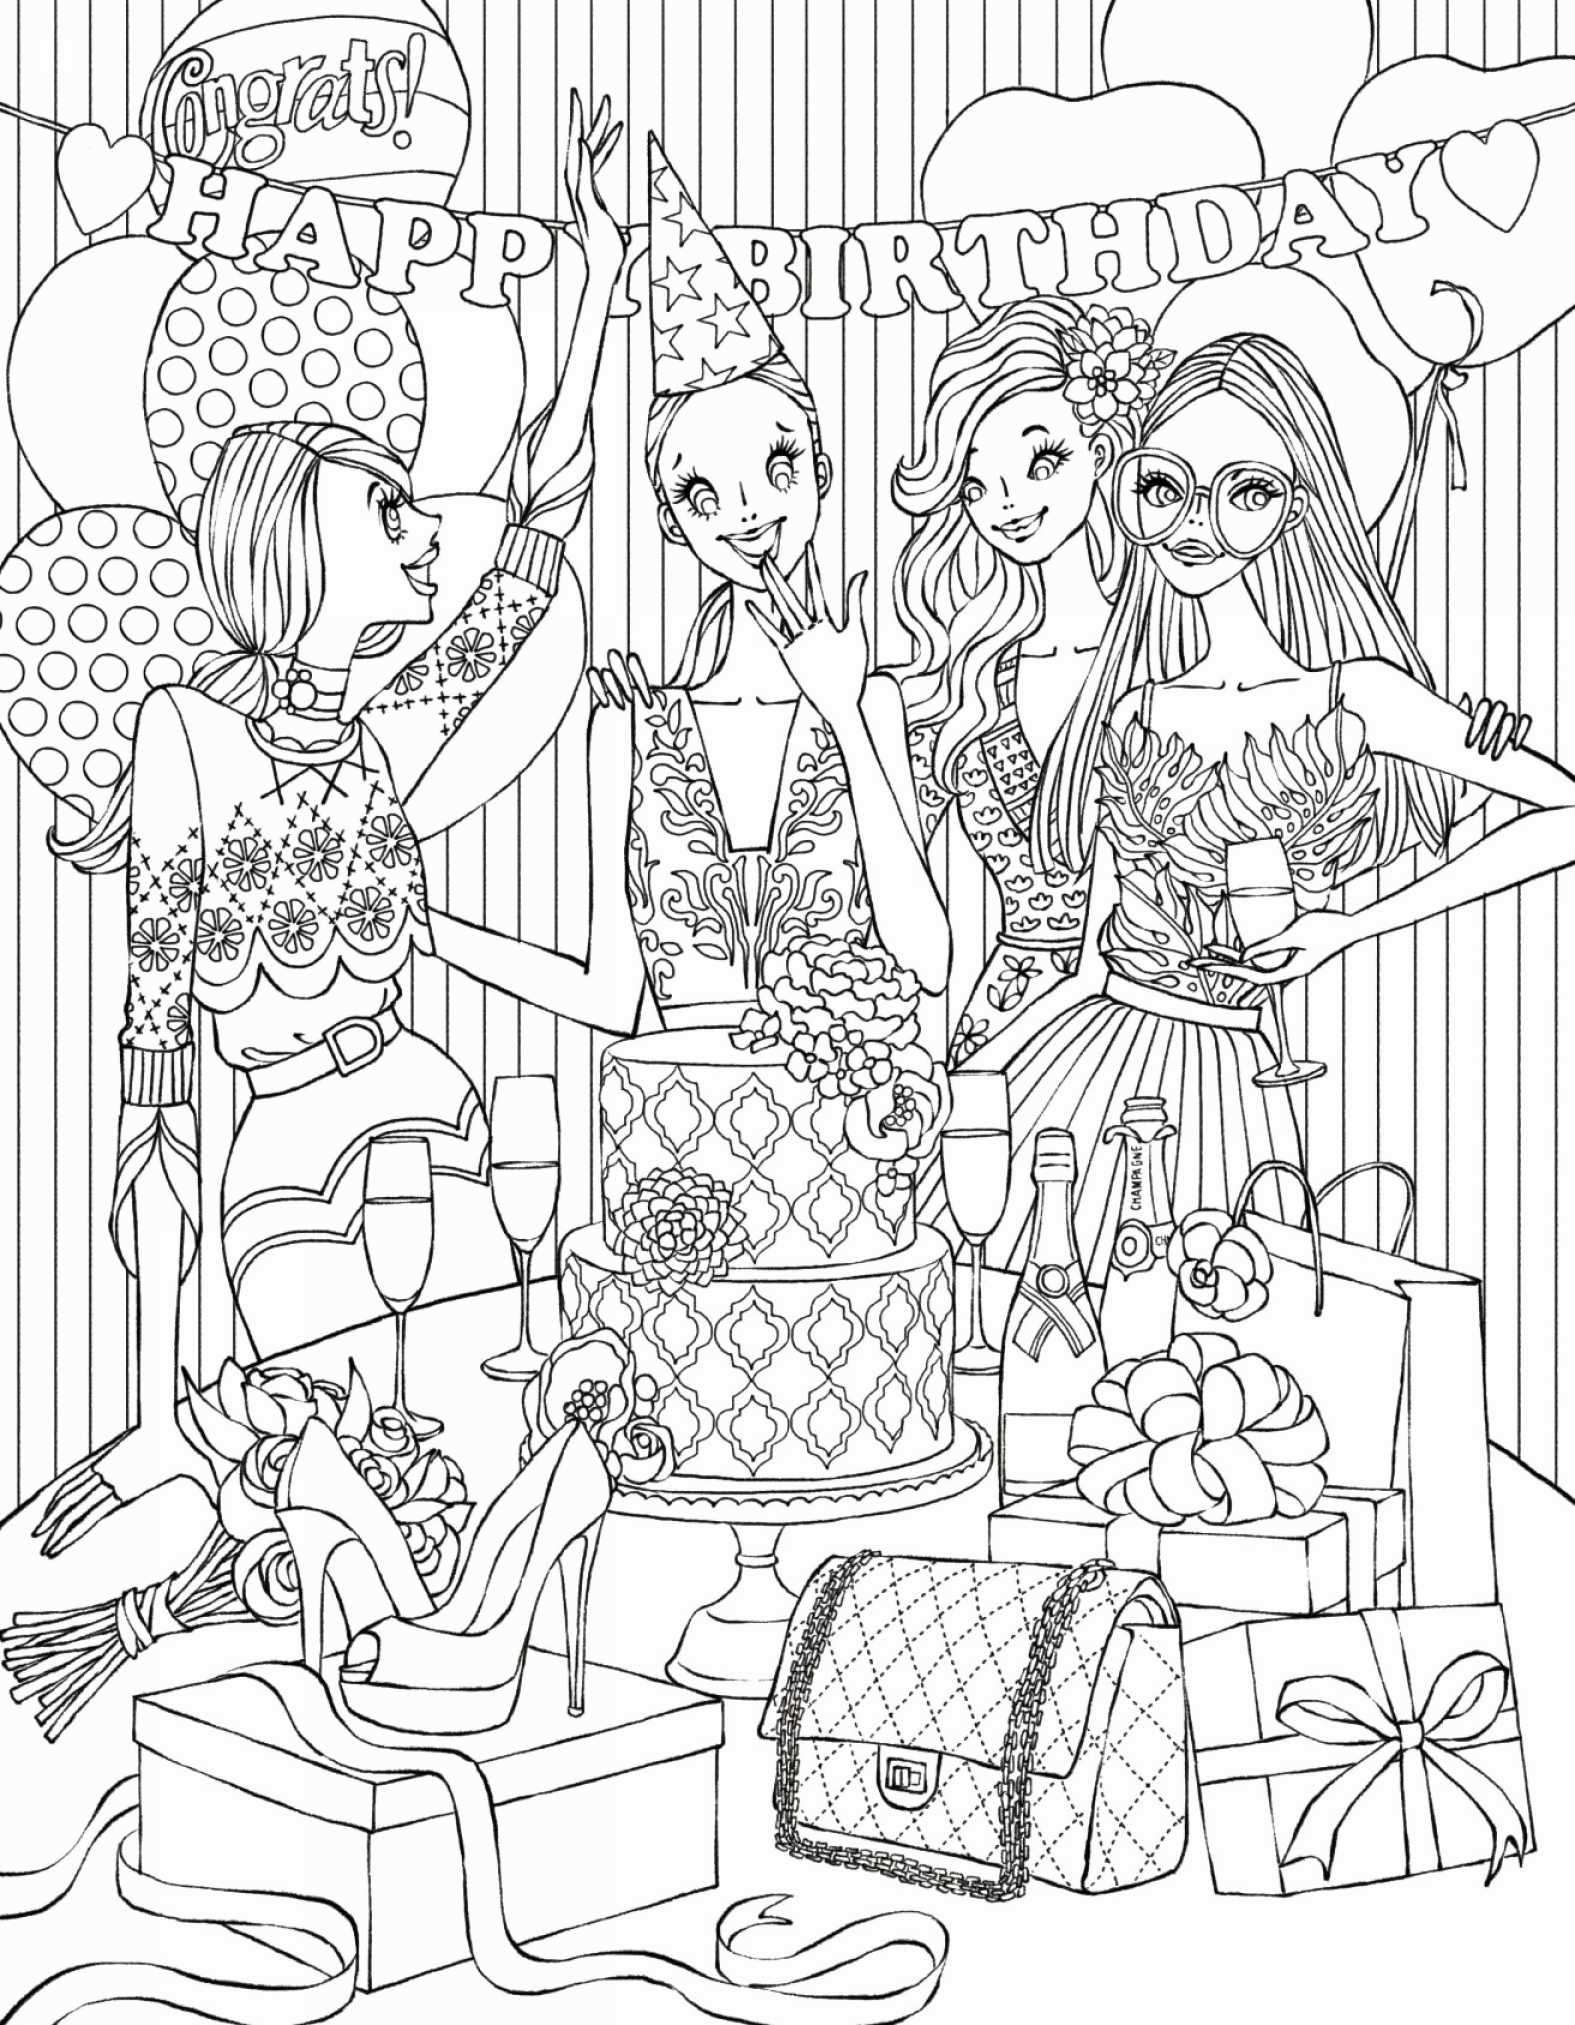 Veggie Tales Christmas Coloring Pages With Pop Star